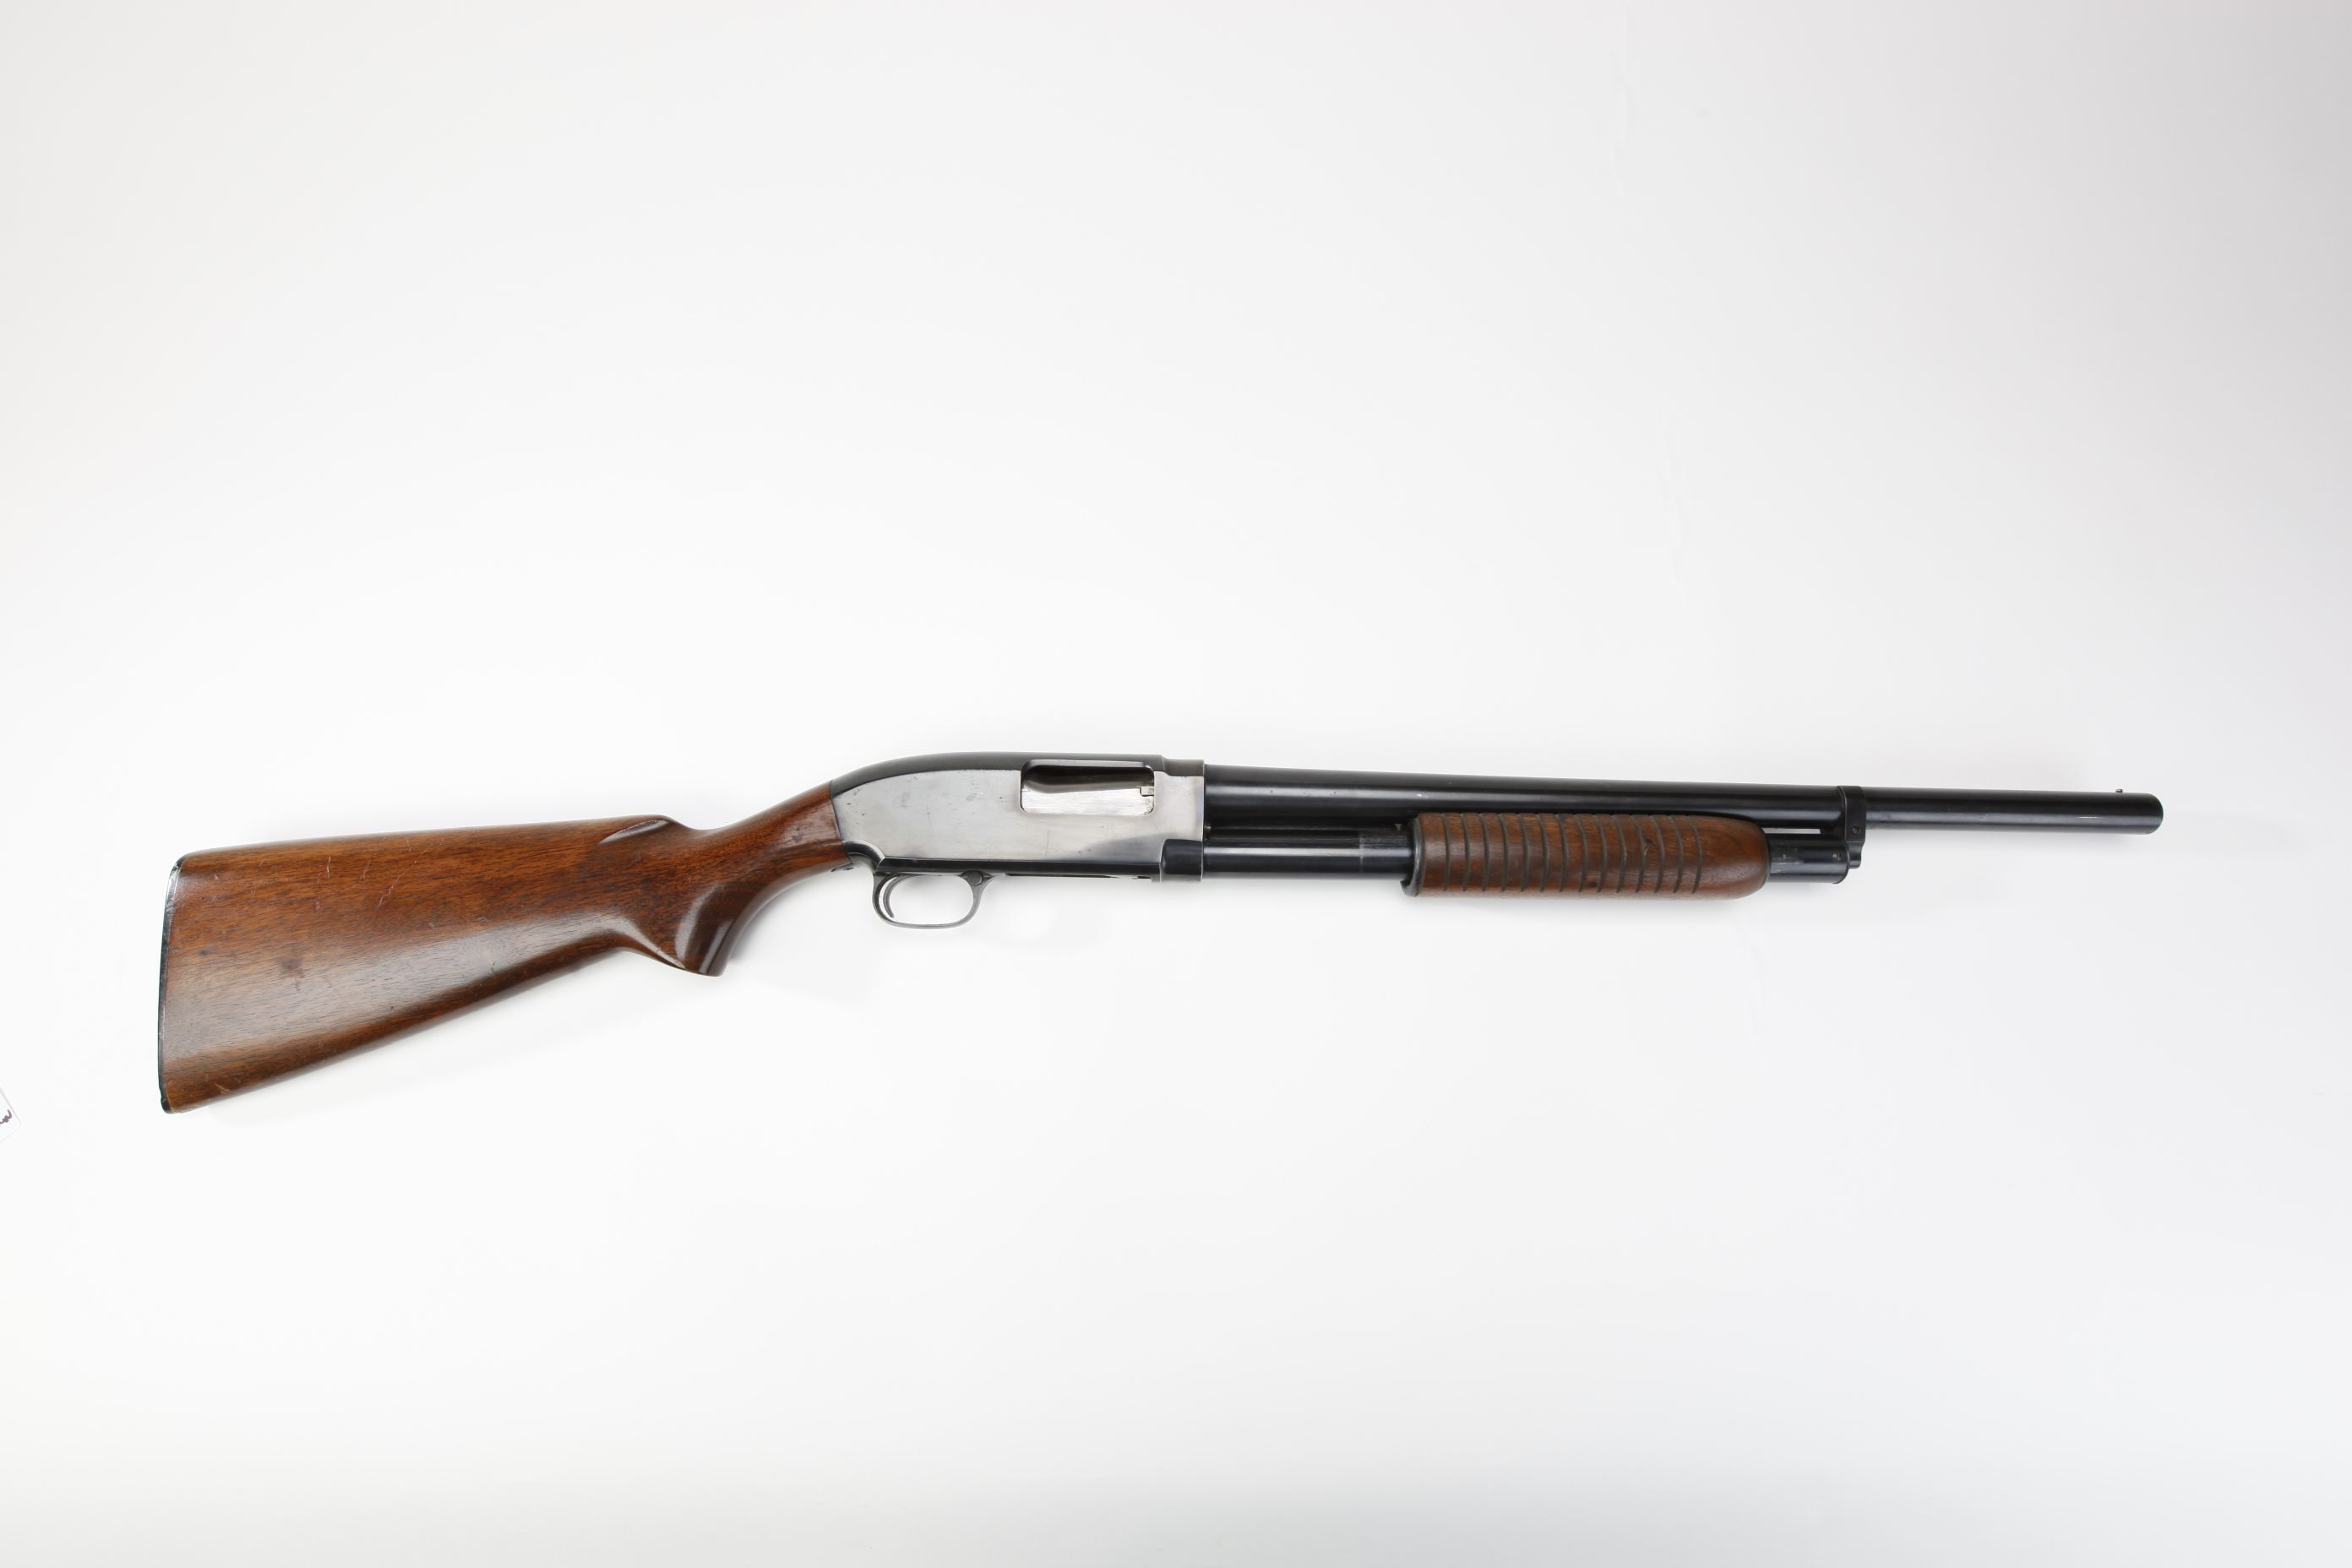 Winchester Model 25 Slide Action Shotgun